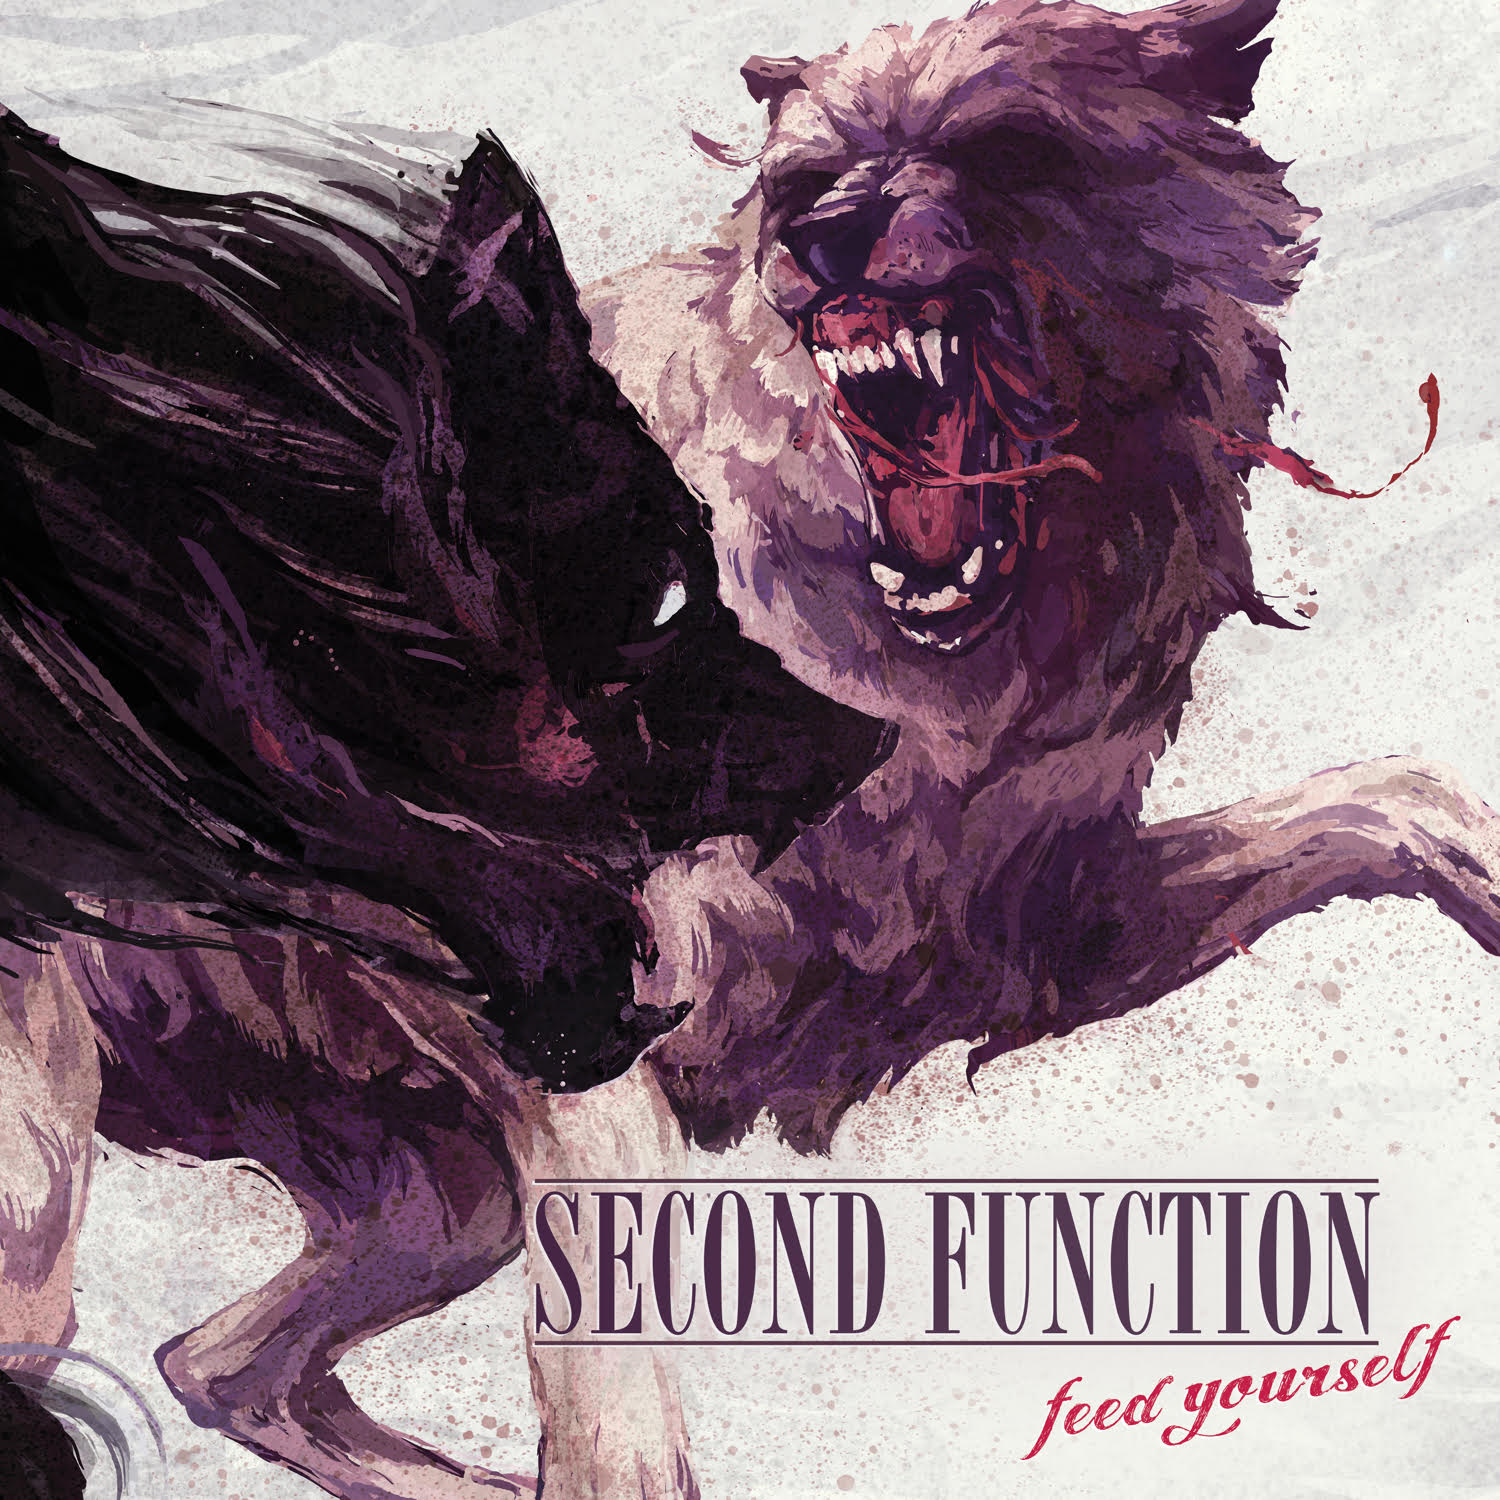 Second Function_Feed Yourself